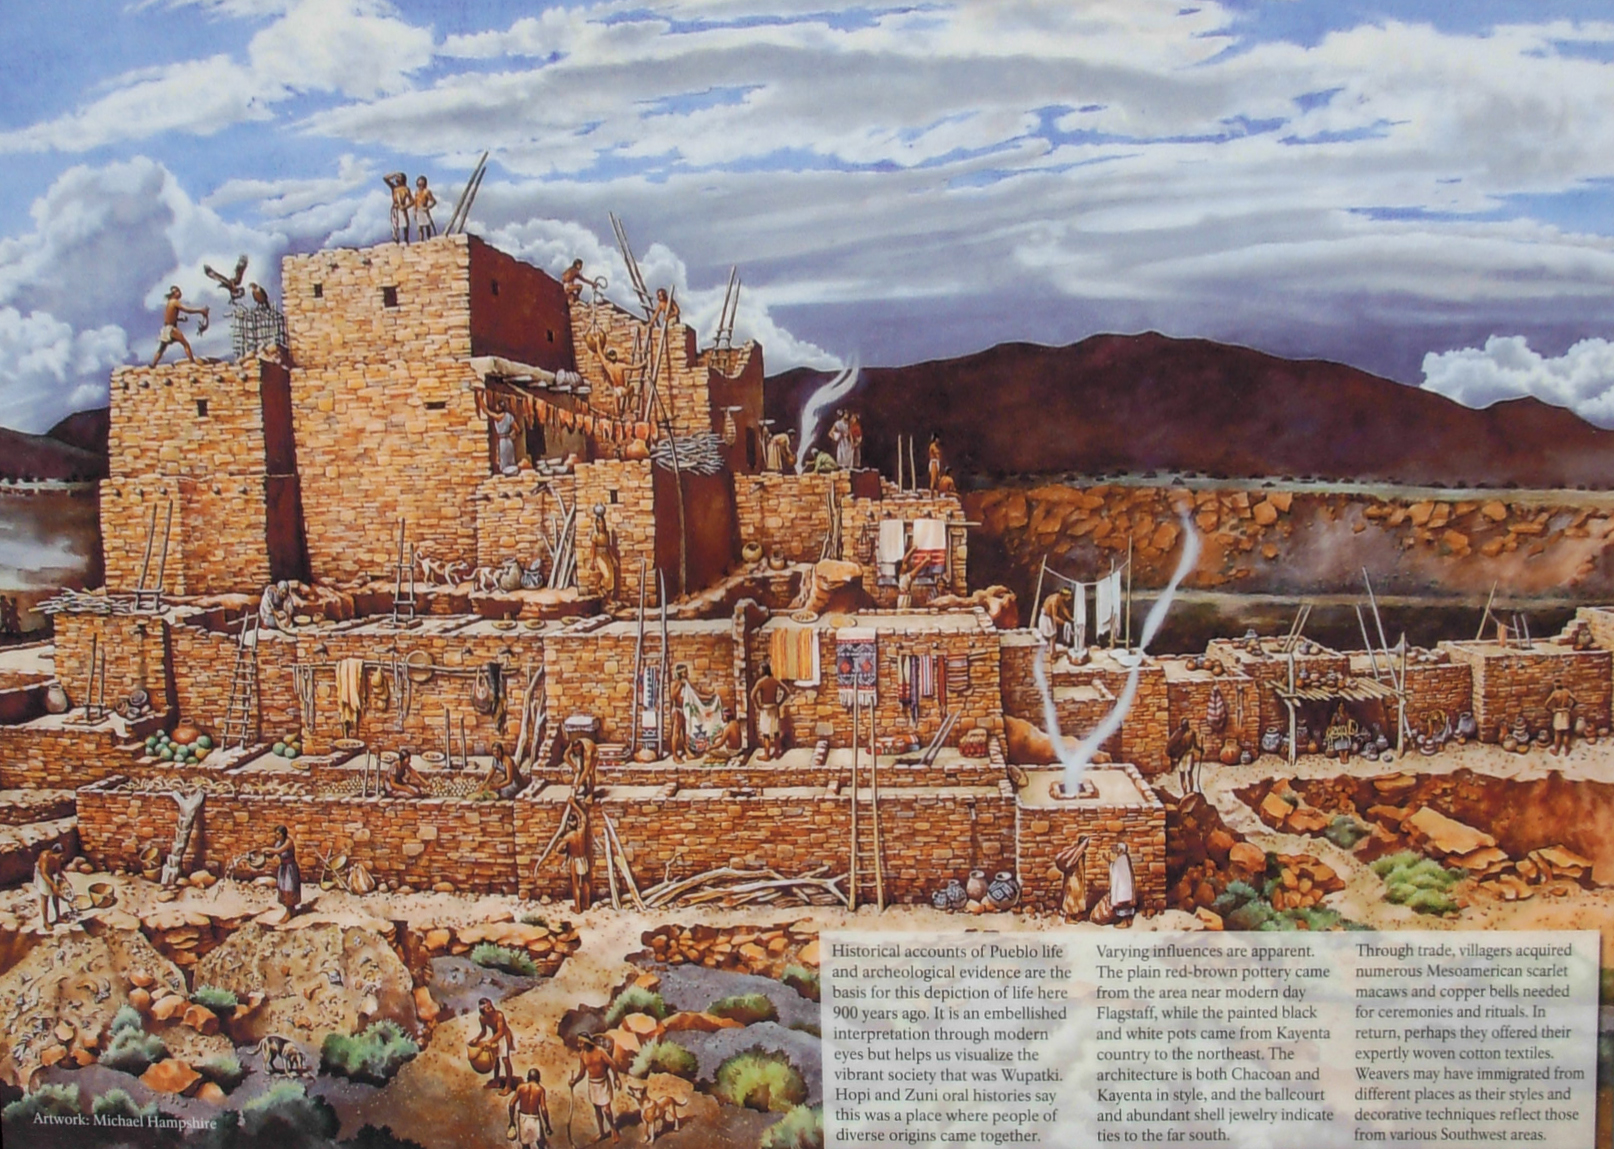 Interpretation panel on the overlook for Wupatki Pueblo